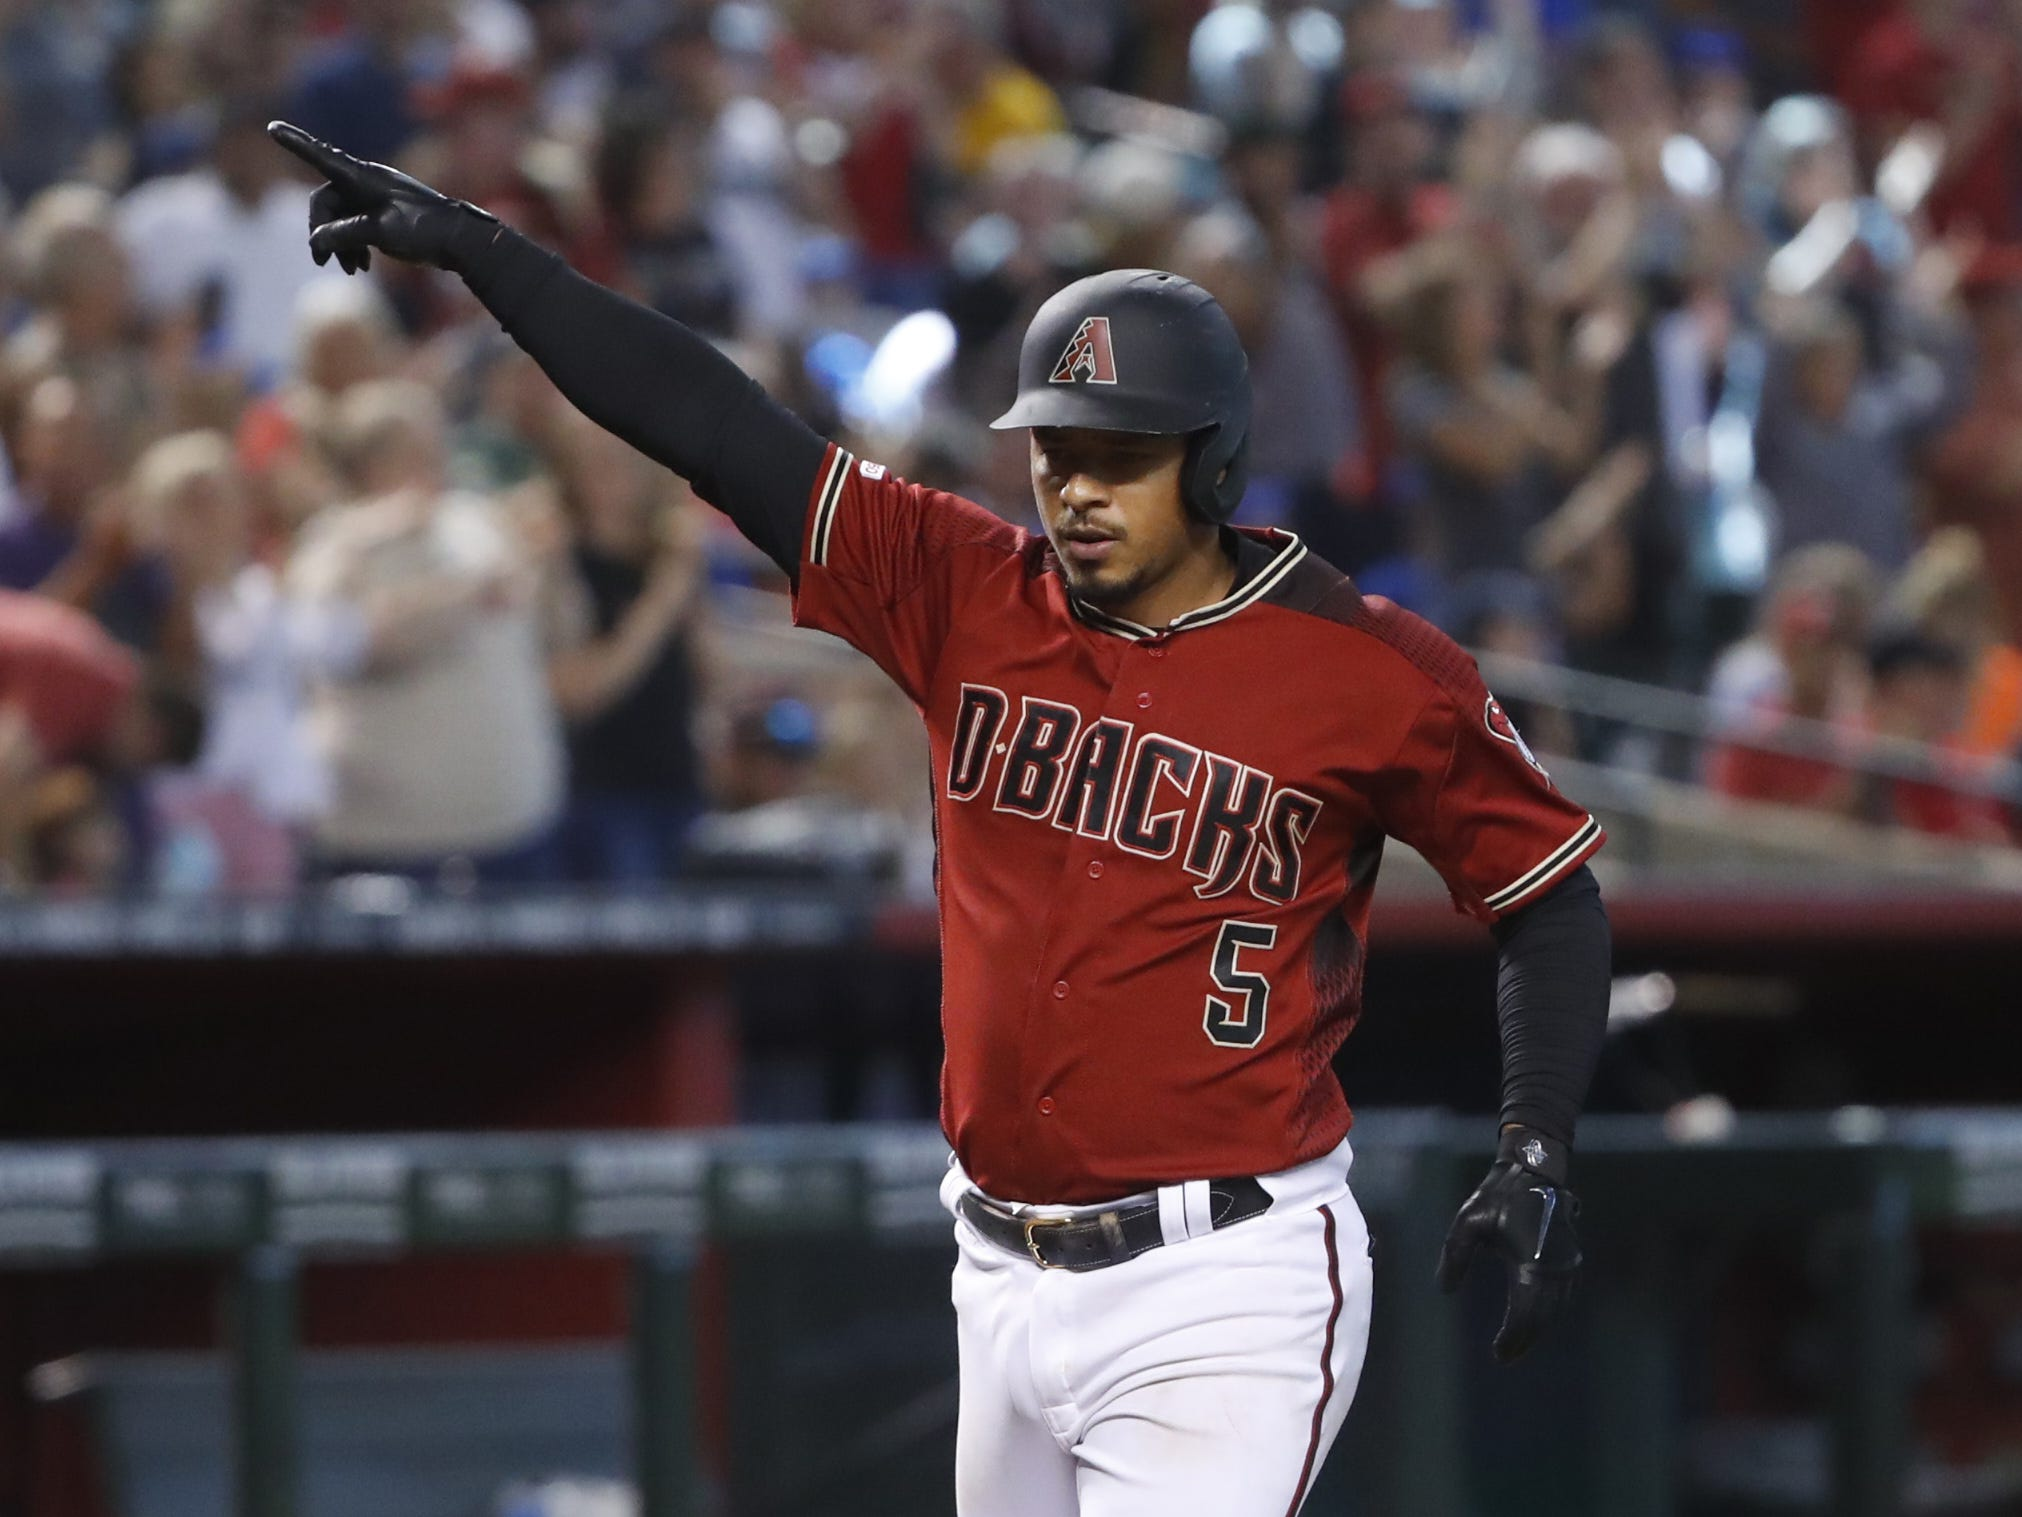 Diamondbacks Eduardo Escobar (5) rounds third for home after hitting a two-run homer during the sixth inning against the Cubs at Chase Field in Phoenix, Ariz. on April 28, 2019.